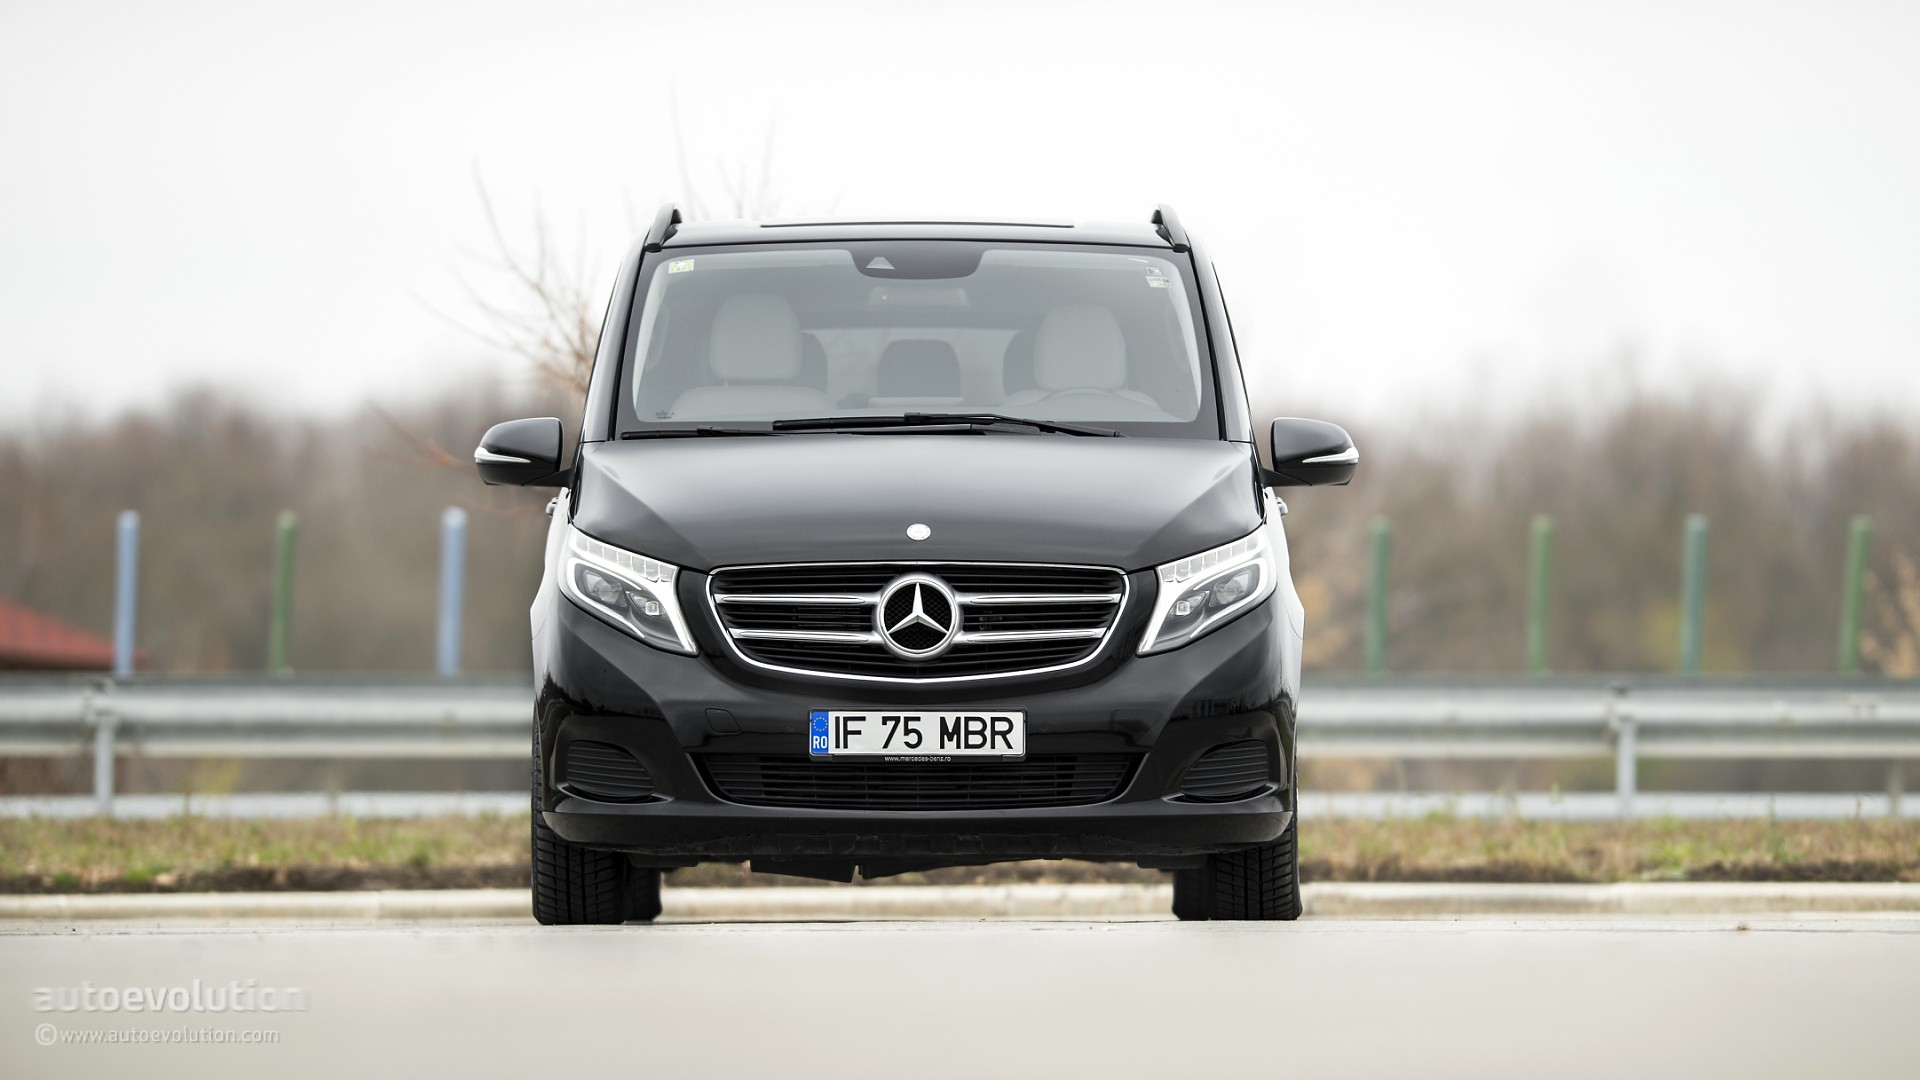 2015 mercedes benz v class review autoevolution. Cars Review. Best American Auto & Cars Review